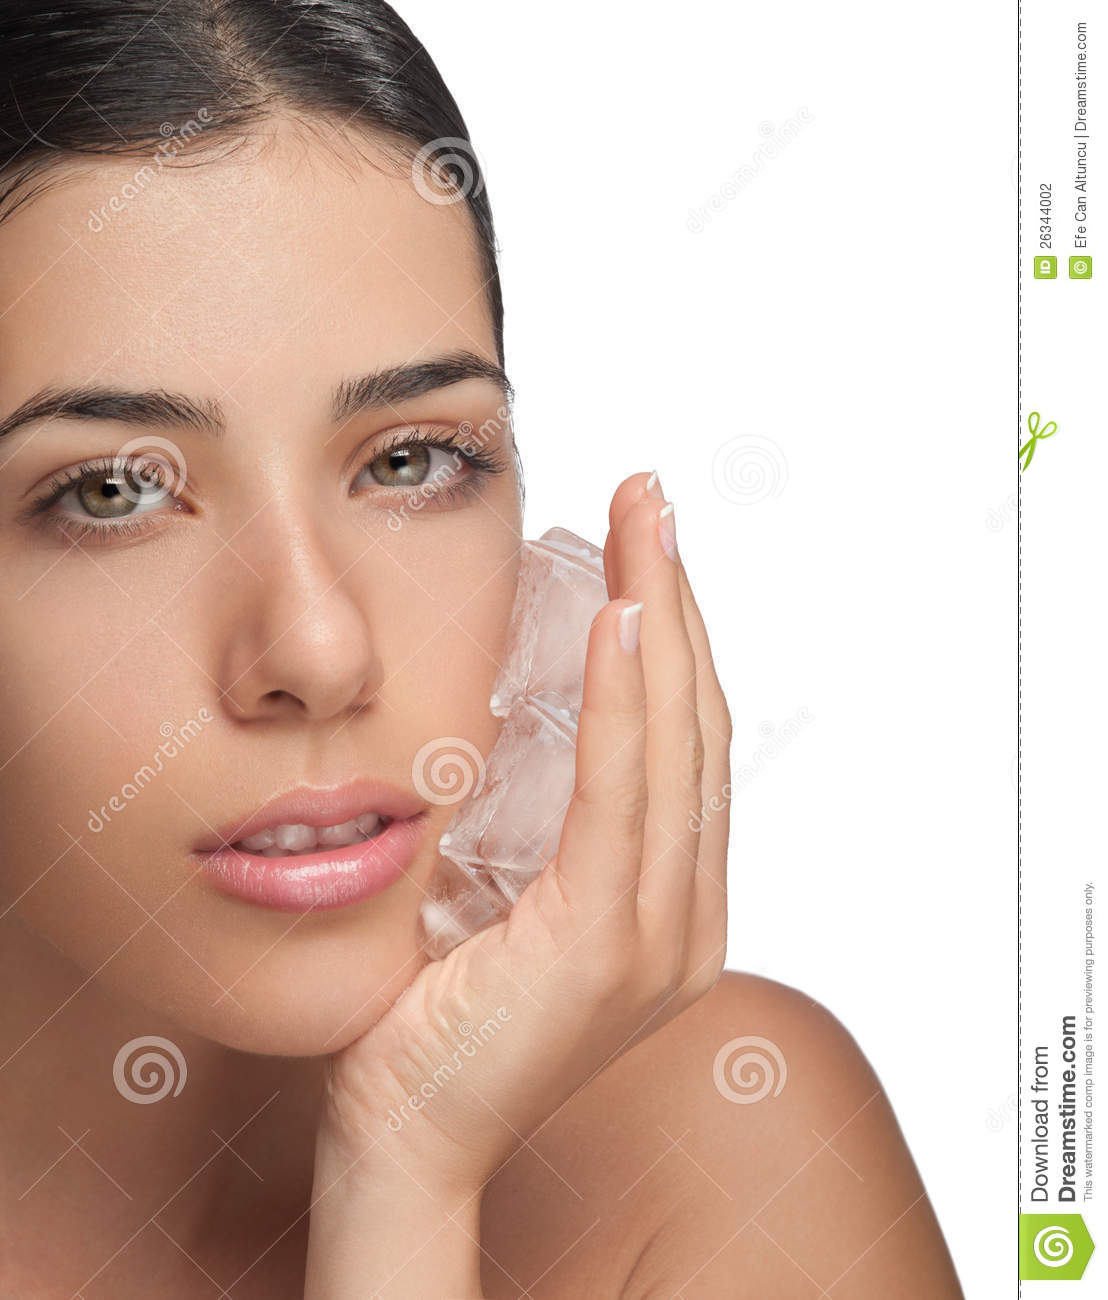 Aging: Antiaging Ice On Girl Face Stock Photo. Image Of Aching